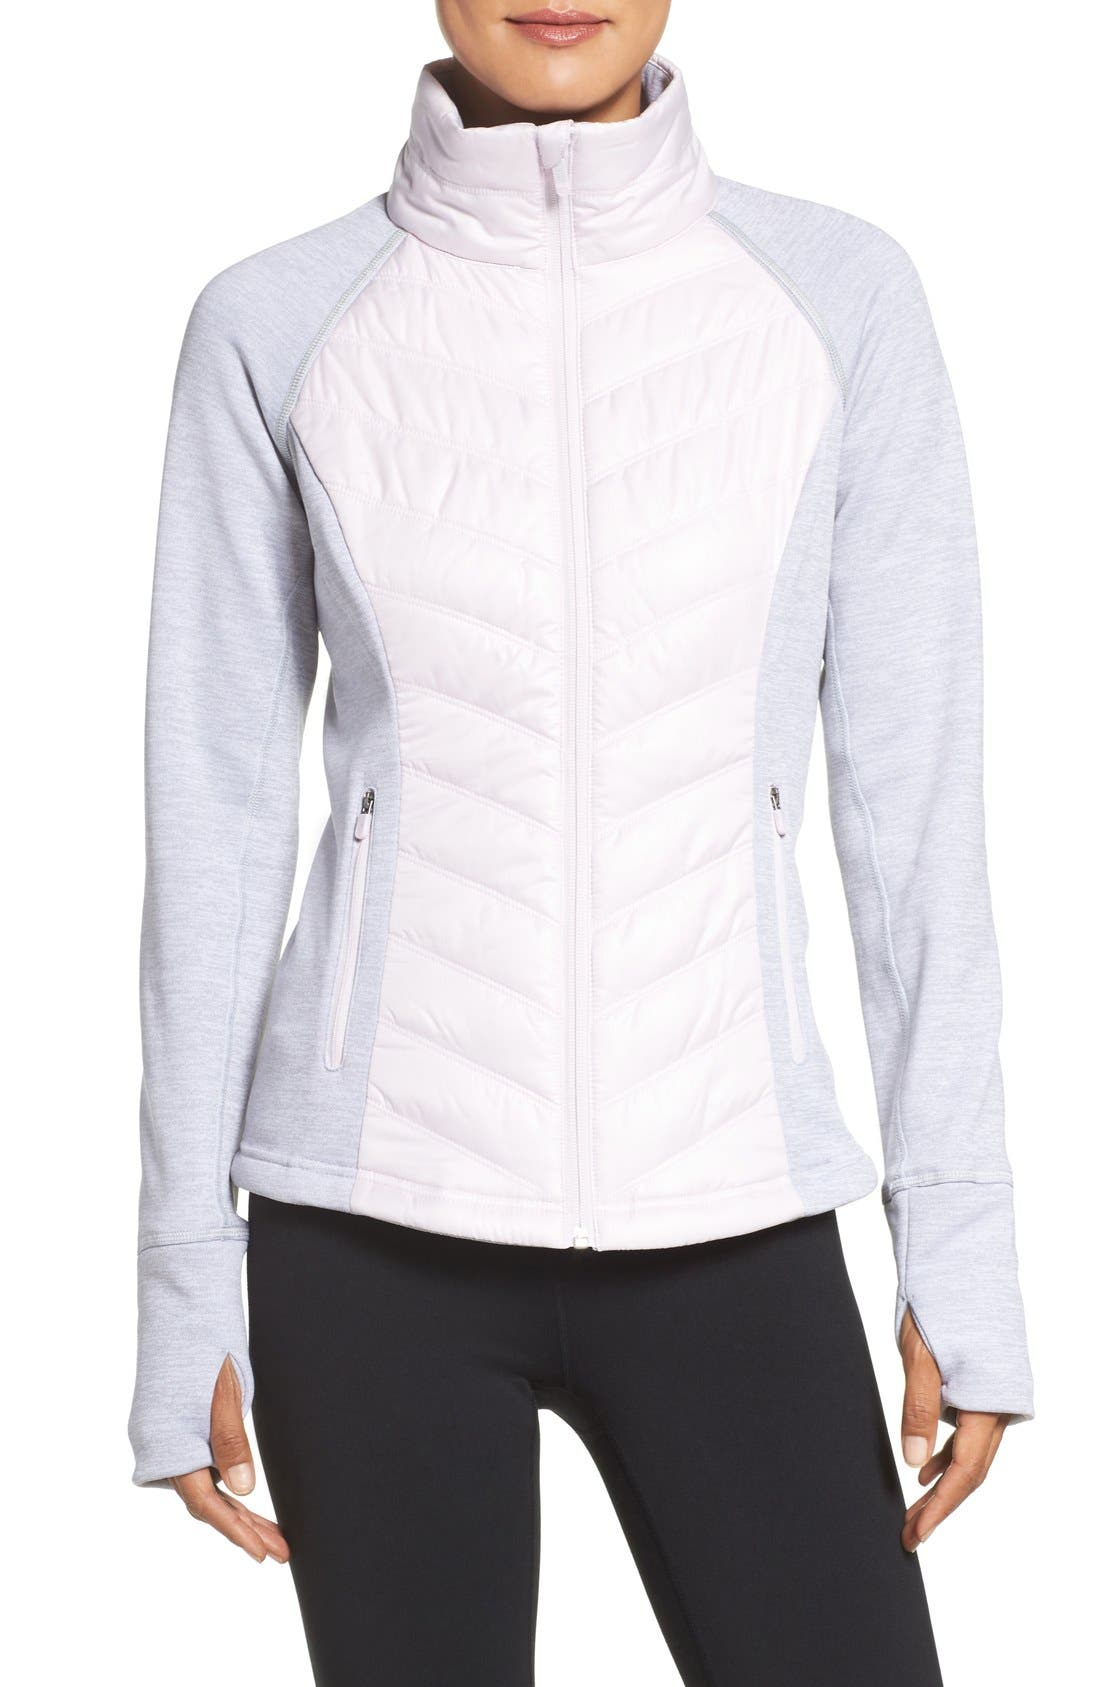 Zelfusion Reflective Quilted Jacket,                             Main thumbnail 11, color,